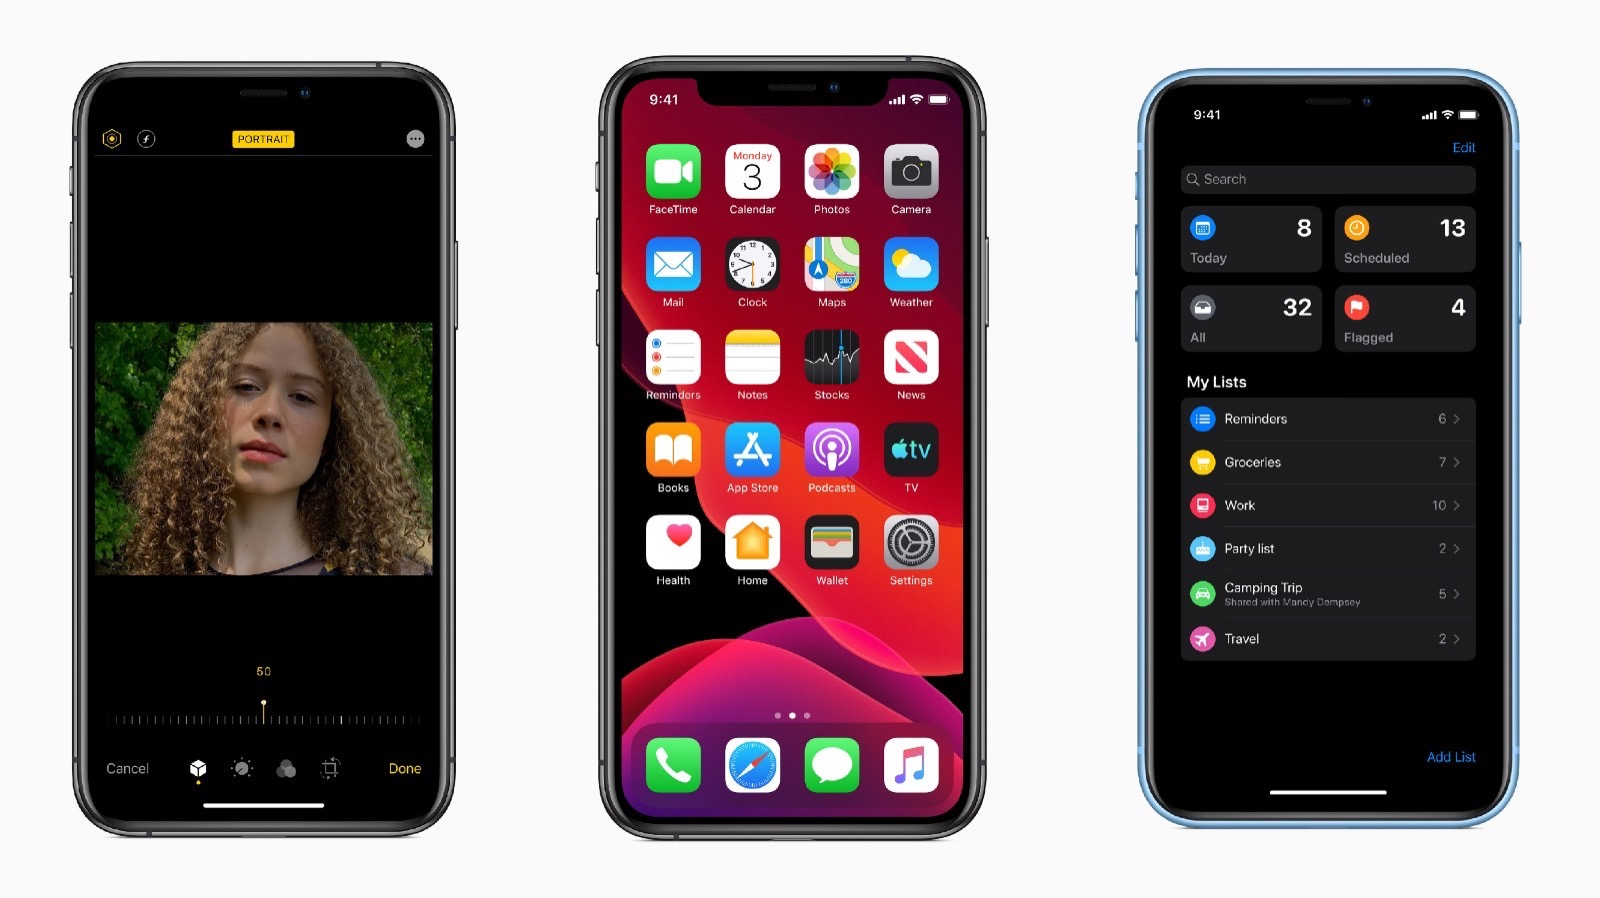 Top iOS13 features